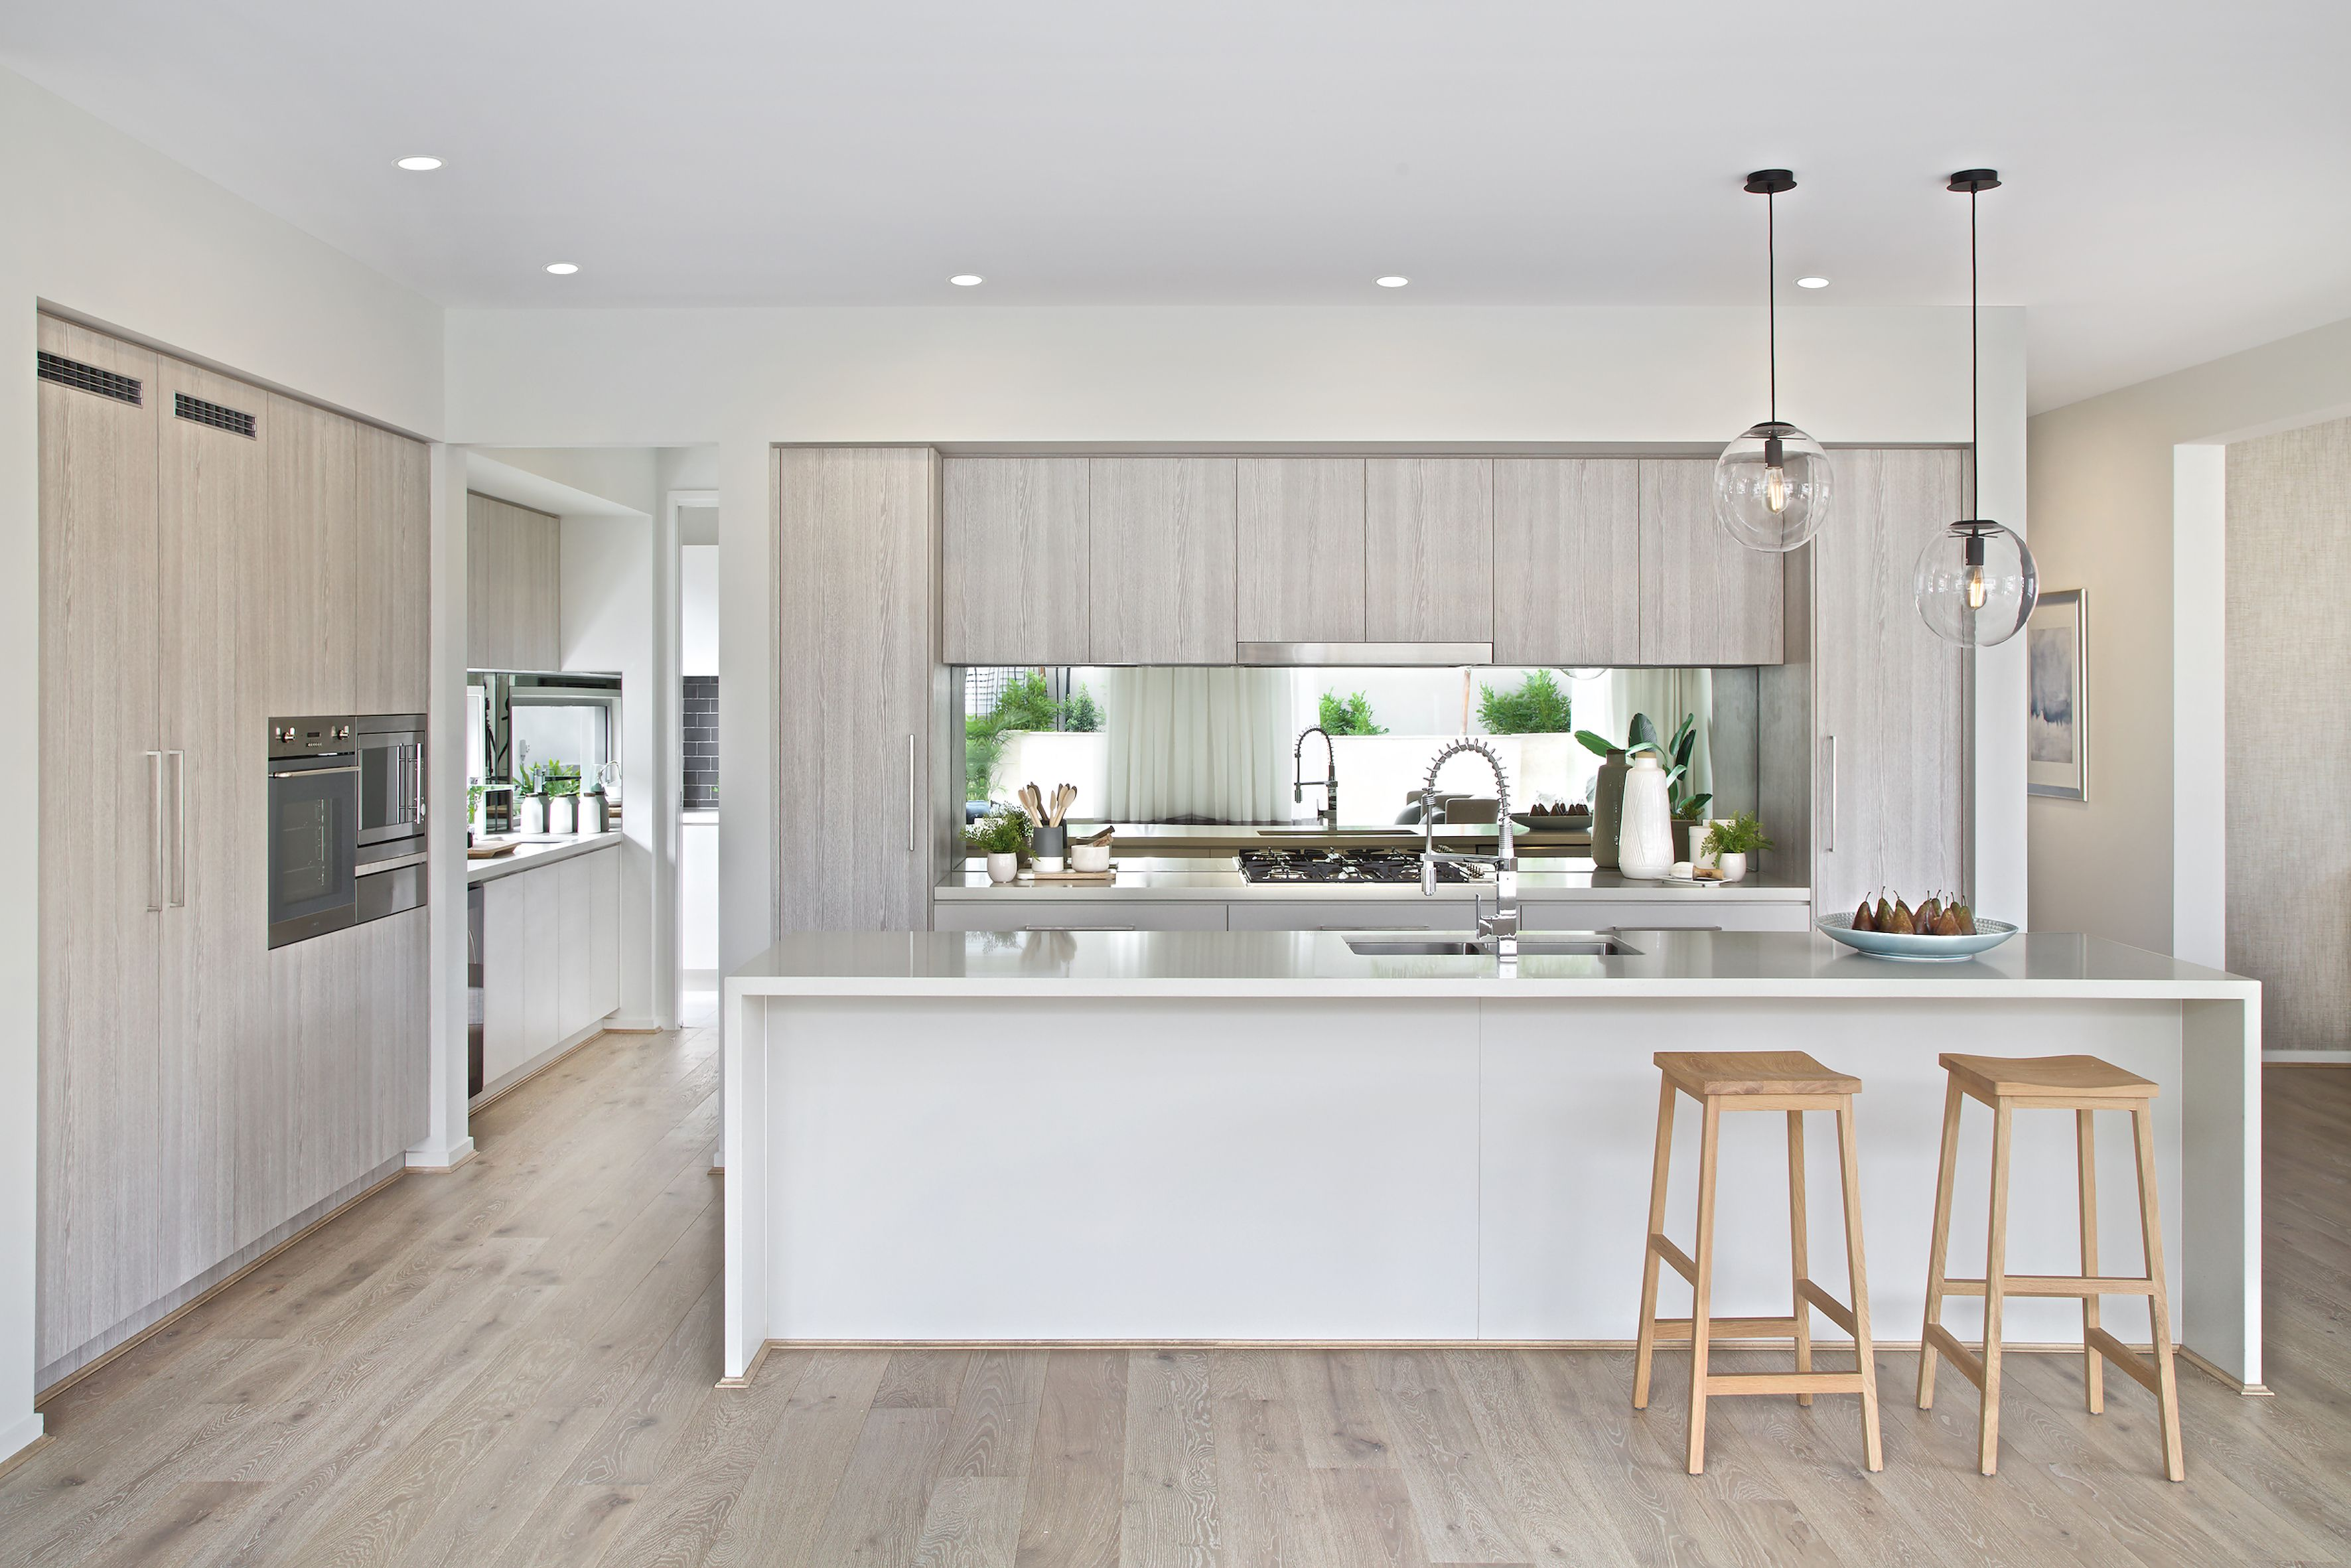 Lovely Kitchen Design At Front Of House Part - 12: Bayside 39 Home Design | Clarendon Homes. House Color SchemesColour Schemes Kitchen ...